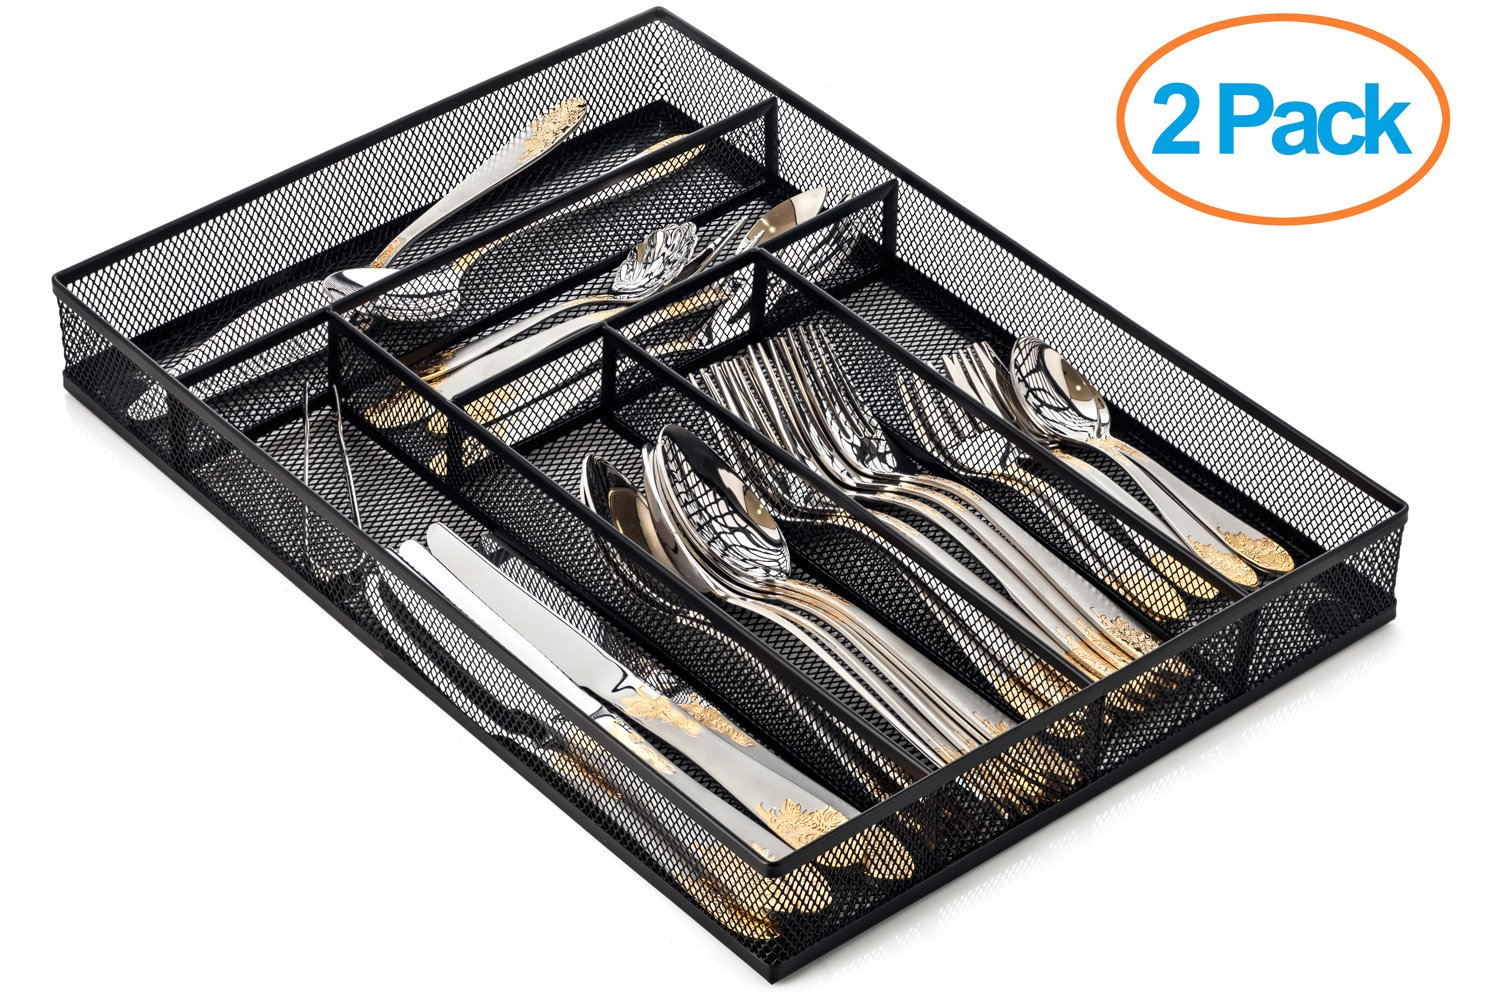 Halter Steel Mesh Large Silverware Cutlery Tray Organizer with No-Slip Foam Feet - Kitchen Organization / Silverware Storage - 16'' X 11.25'' X 2'' - 2 Pack